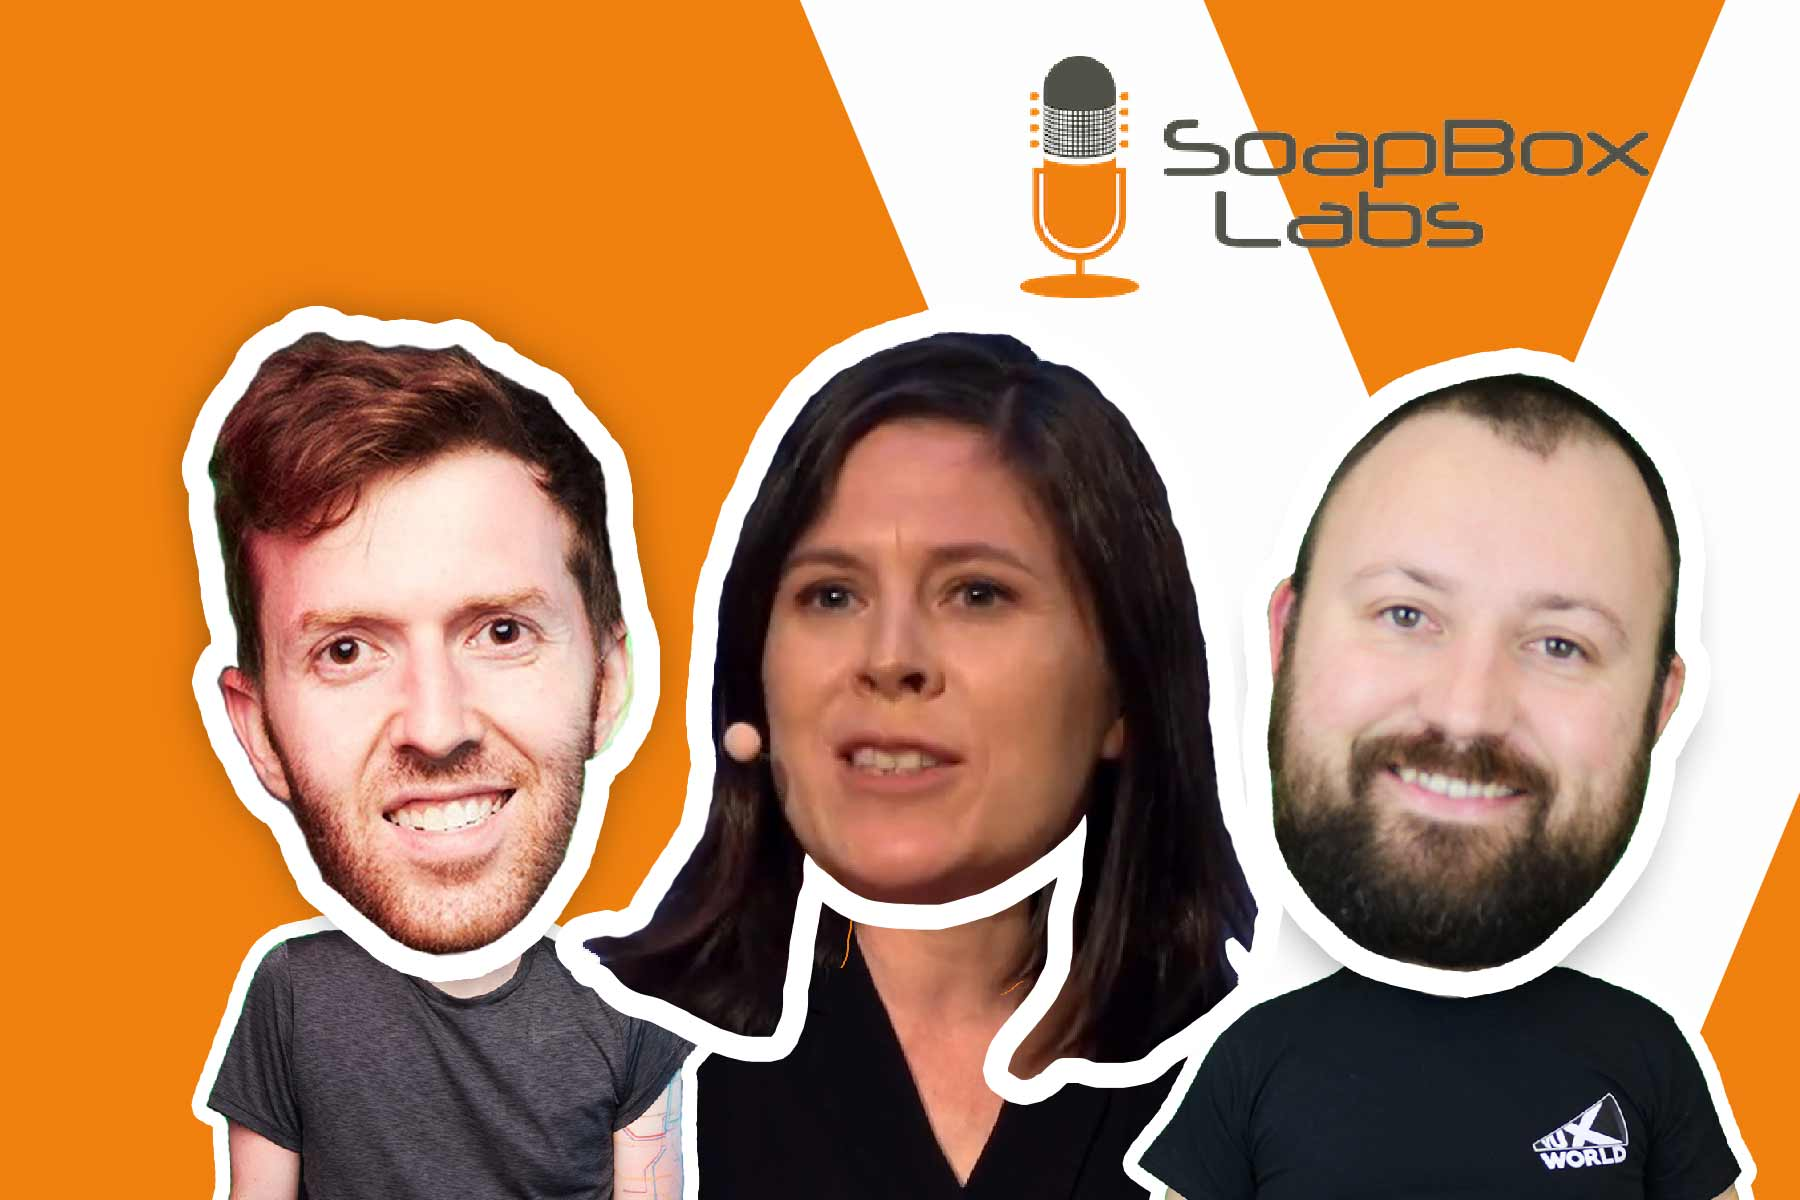 patricia scanlon of soapbox labs joins kane simms and dustin coates on the vux world podcast